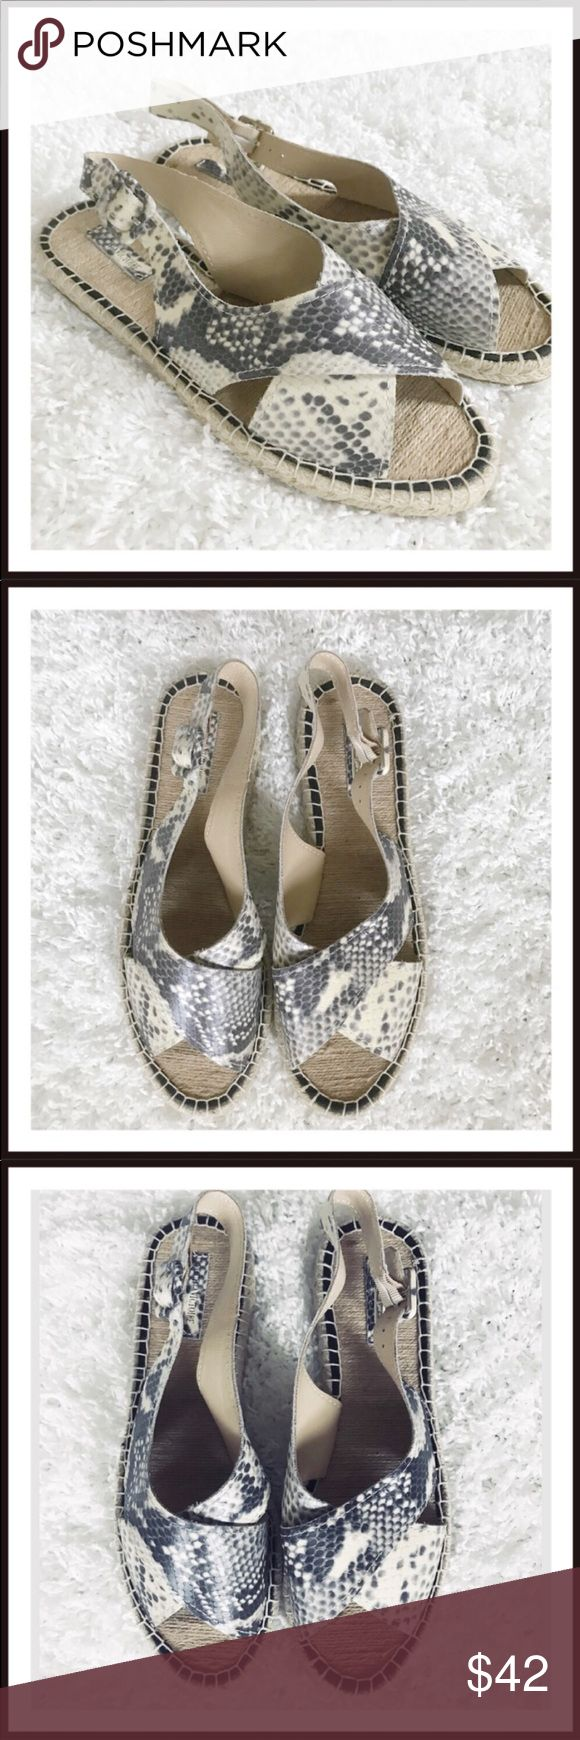 413705228d28  Snakeskin Leather upper with a Open-Toe .  An earthy espadrille sole  balances the effortless elegance of an open-toe slingback sandal in richly  ...